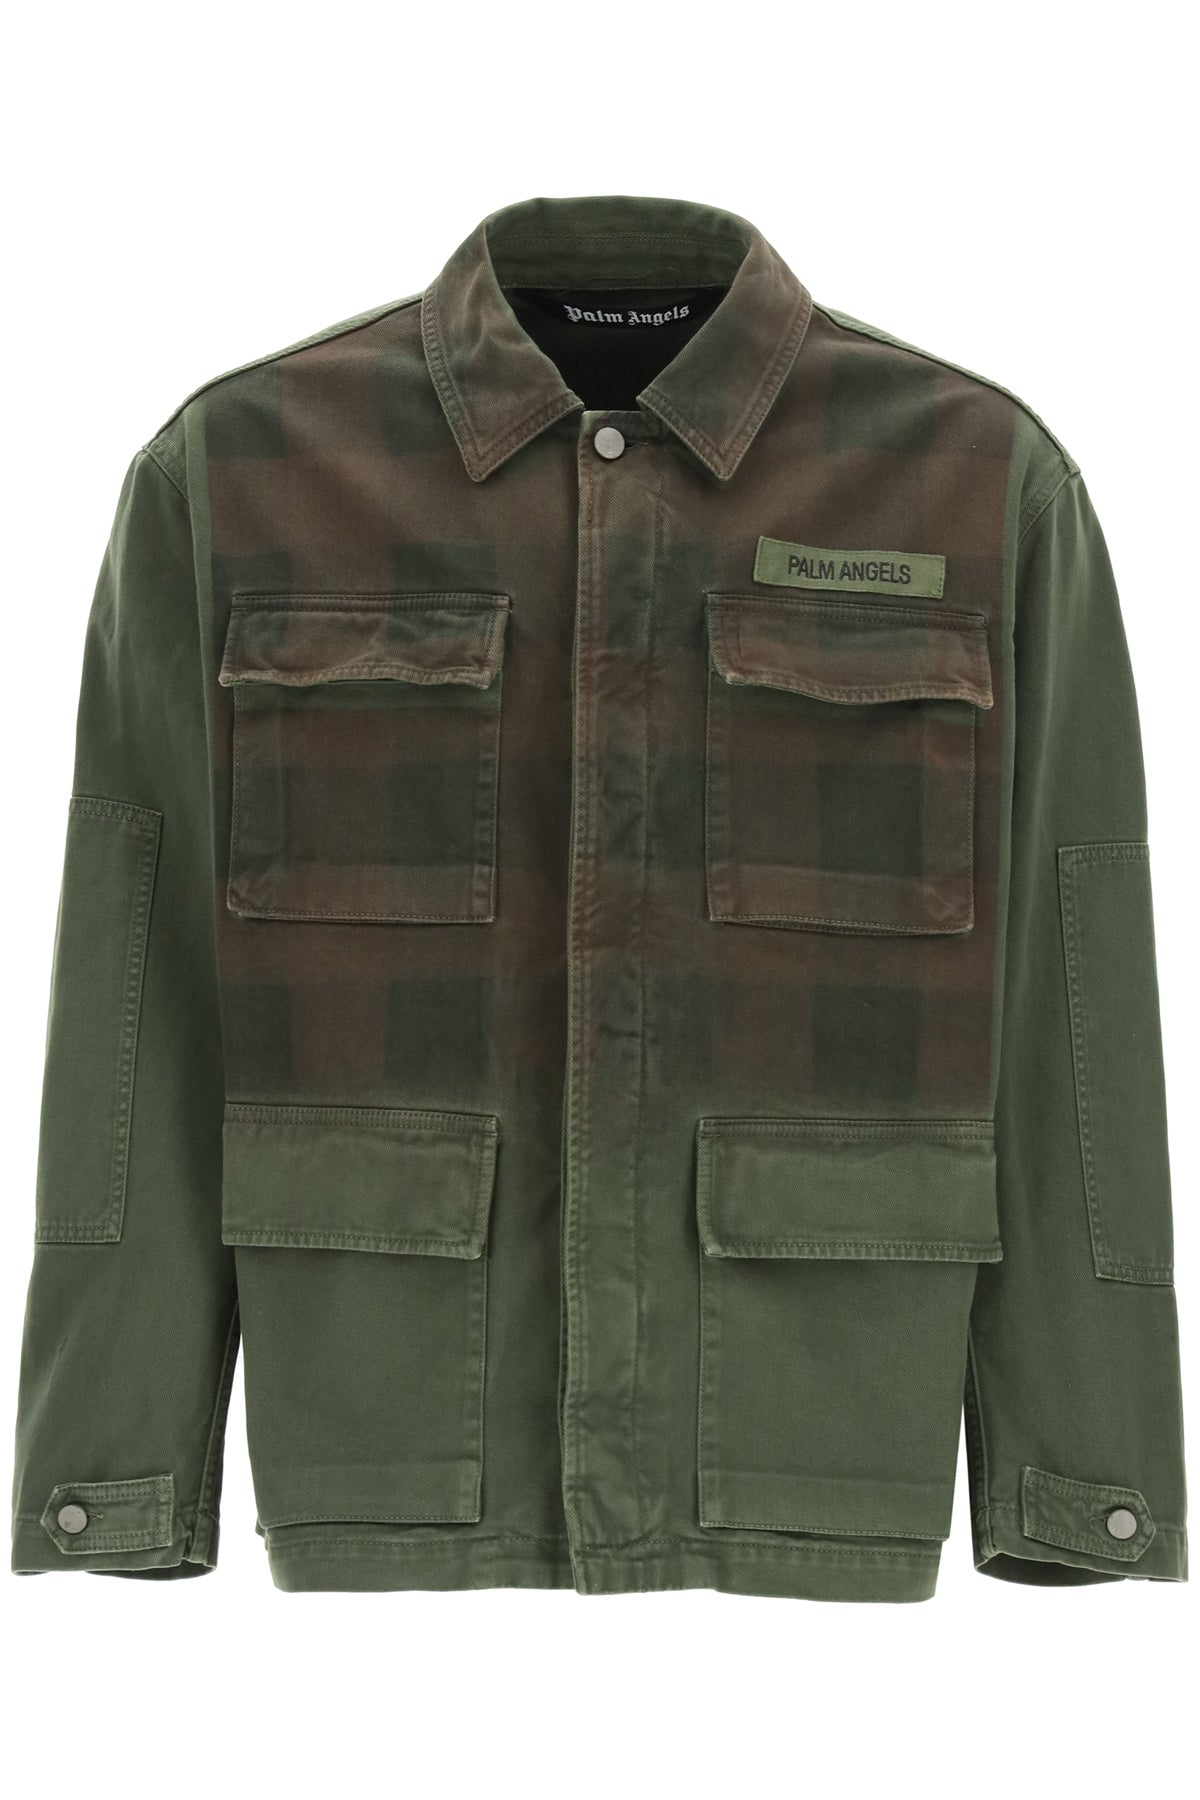 Palm Angels Cottons PALM ANGELS BUFFALO MILITARY JACKET